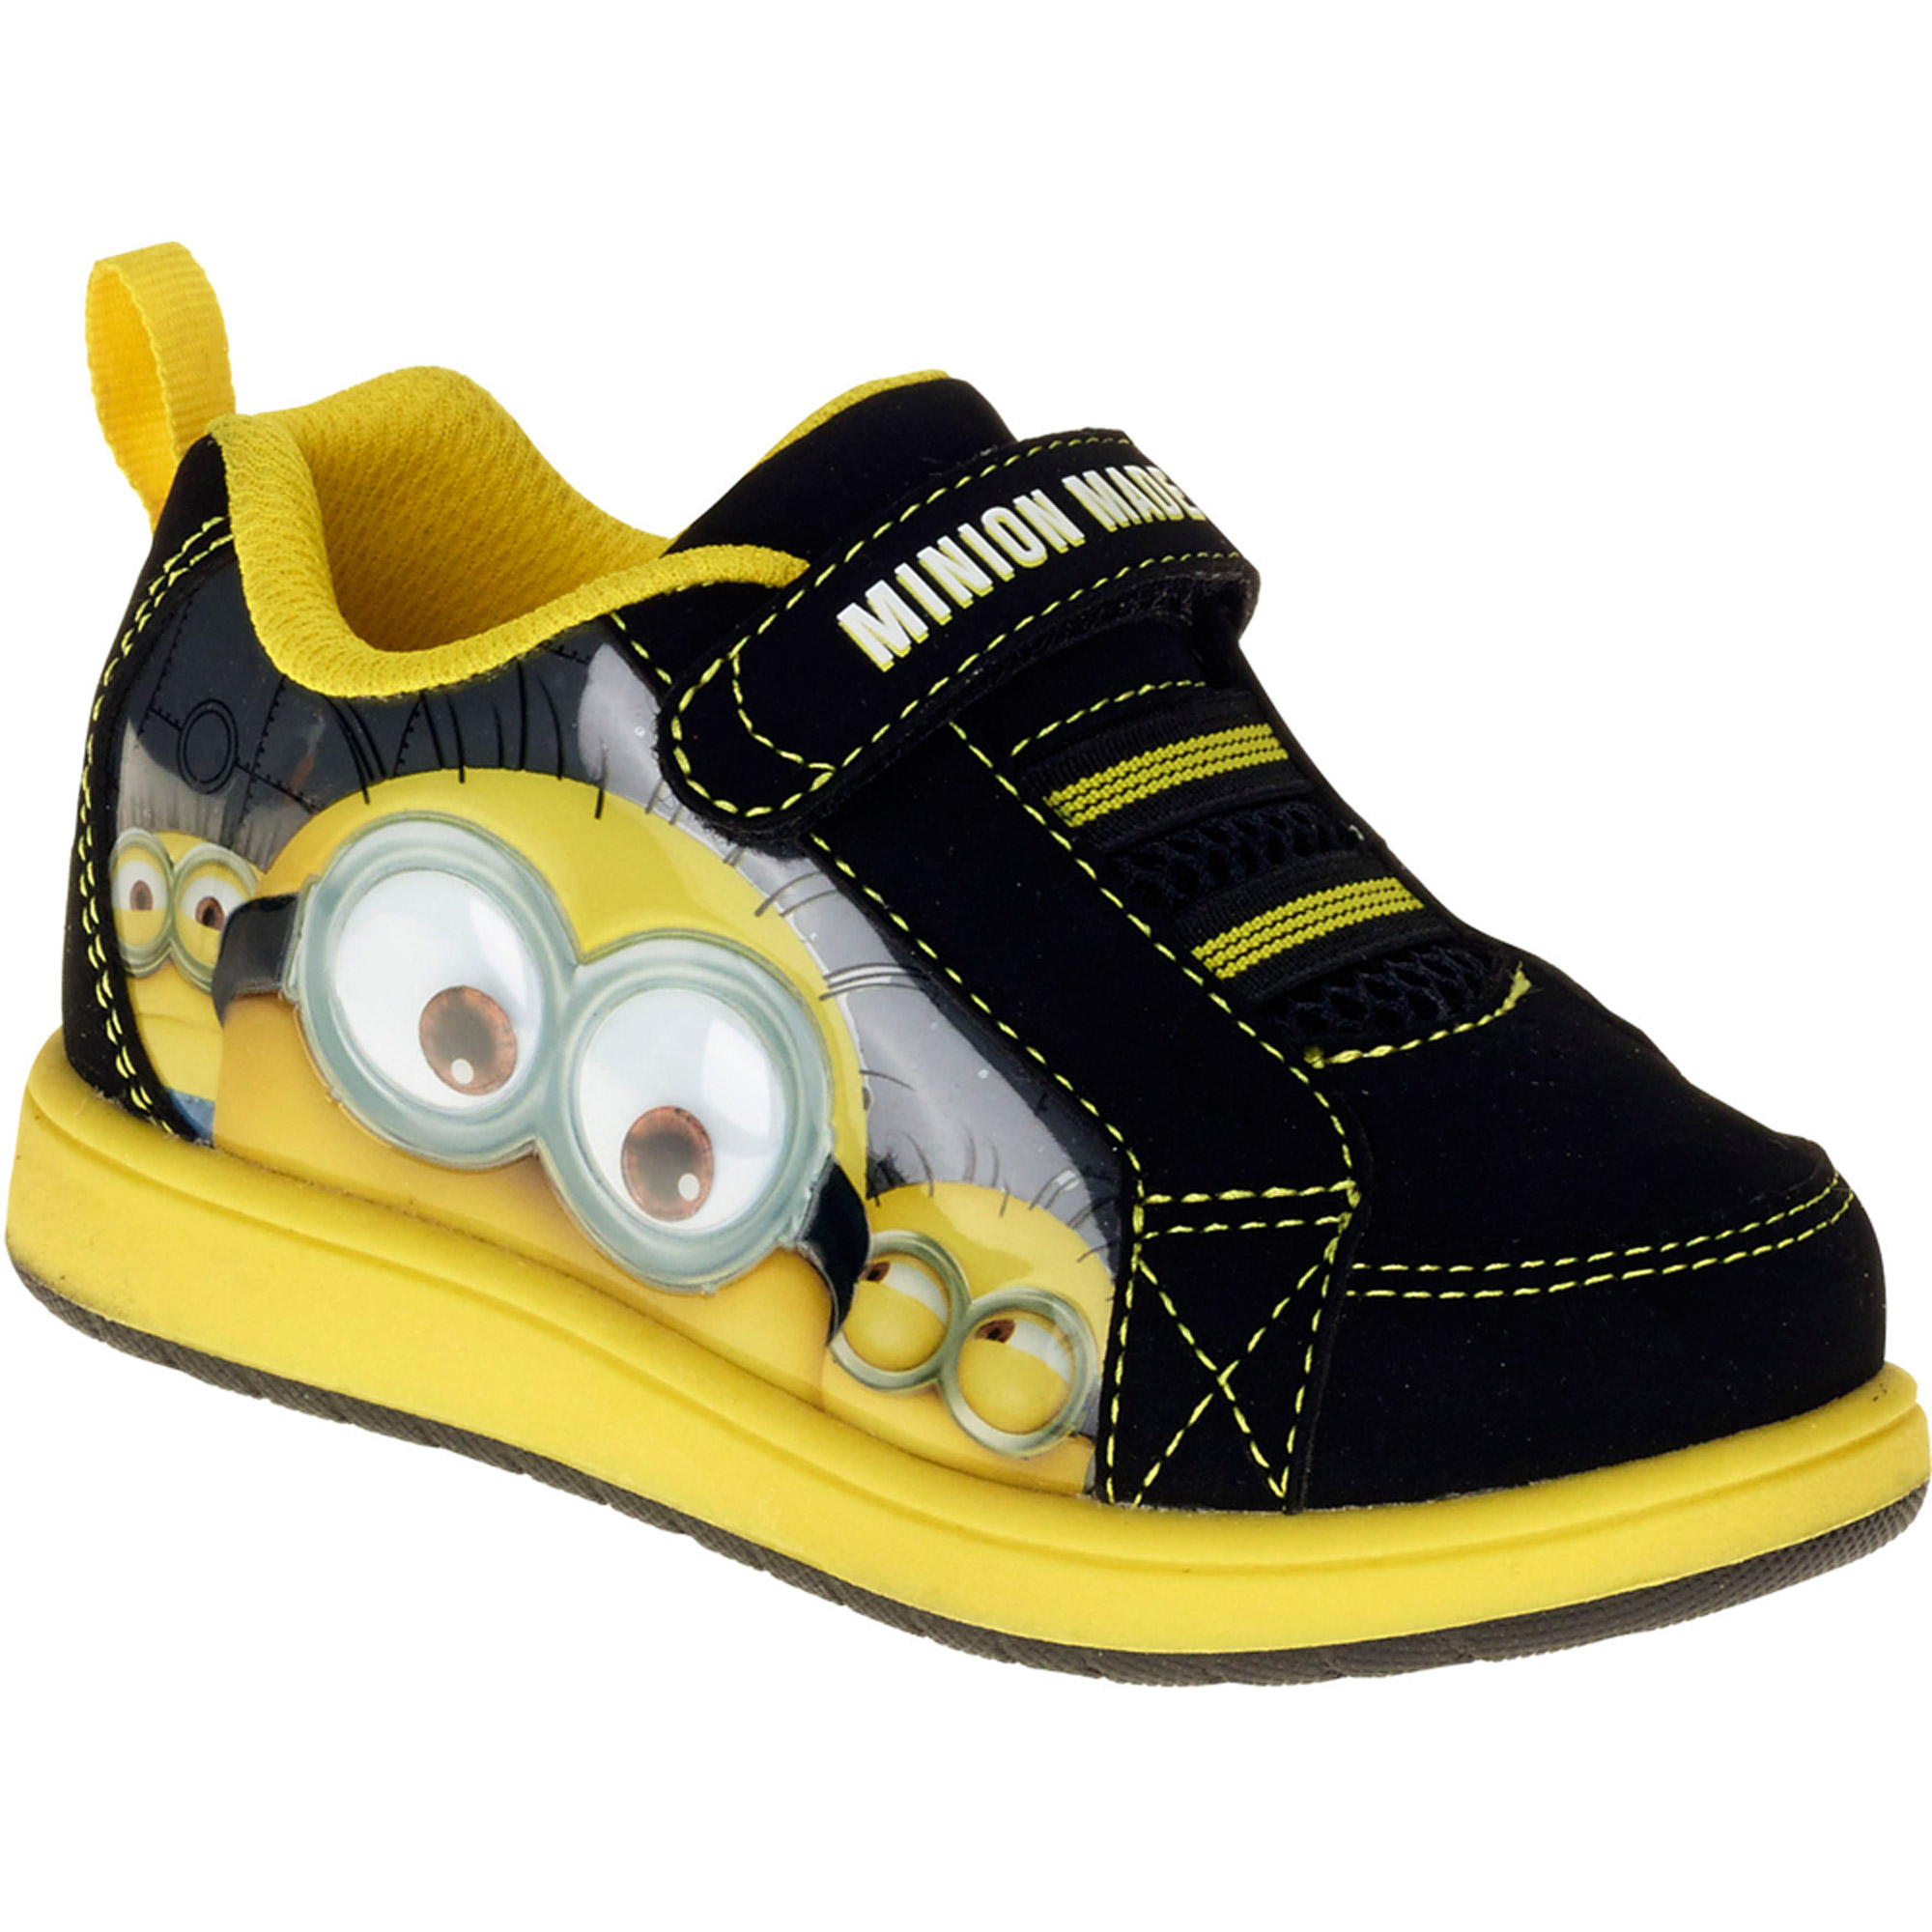 TODDLER BOYS DESPICABLE ME ATHLETIC SHOE